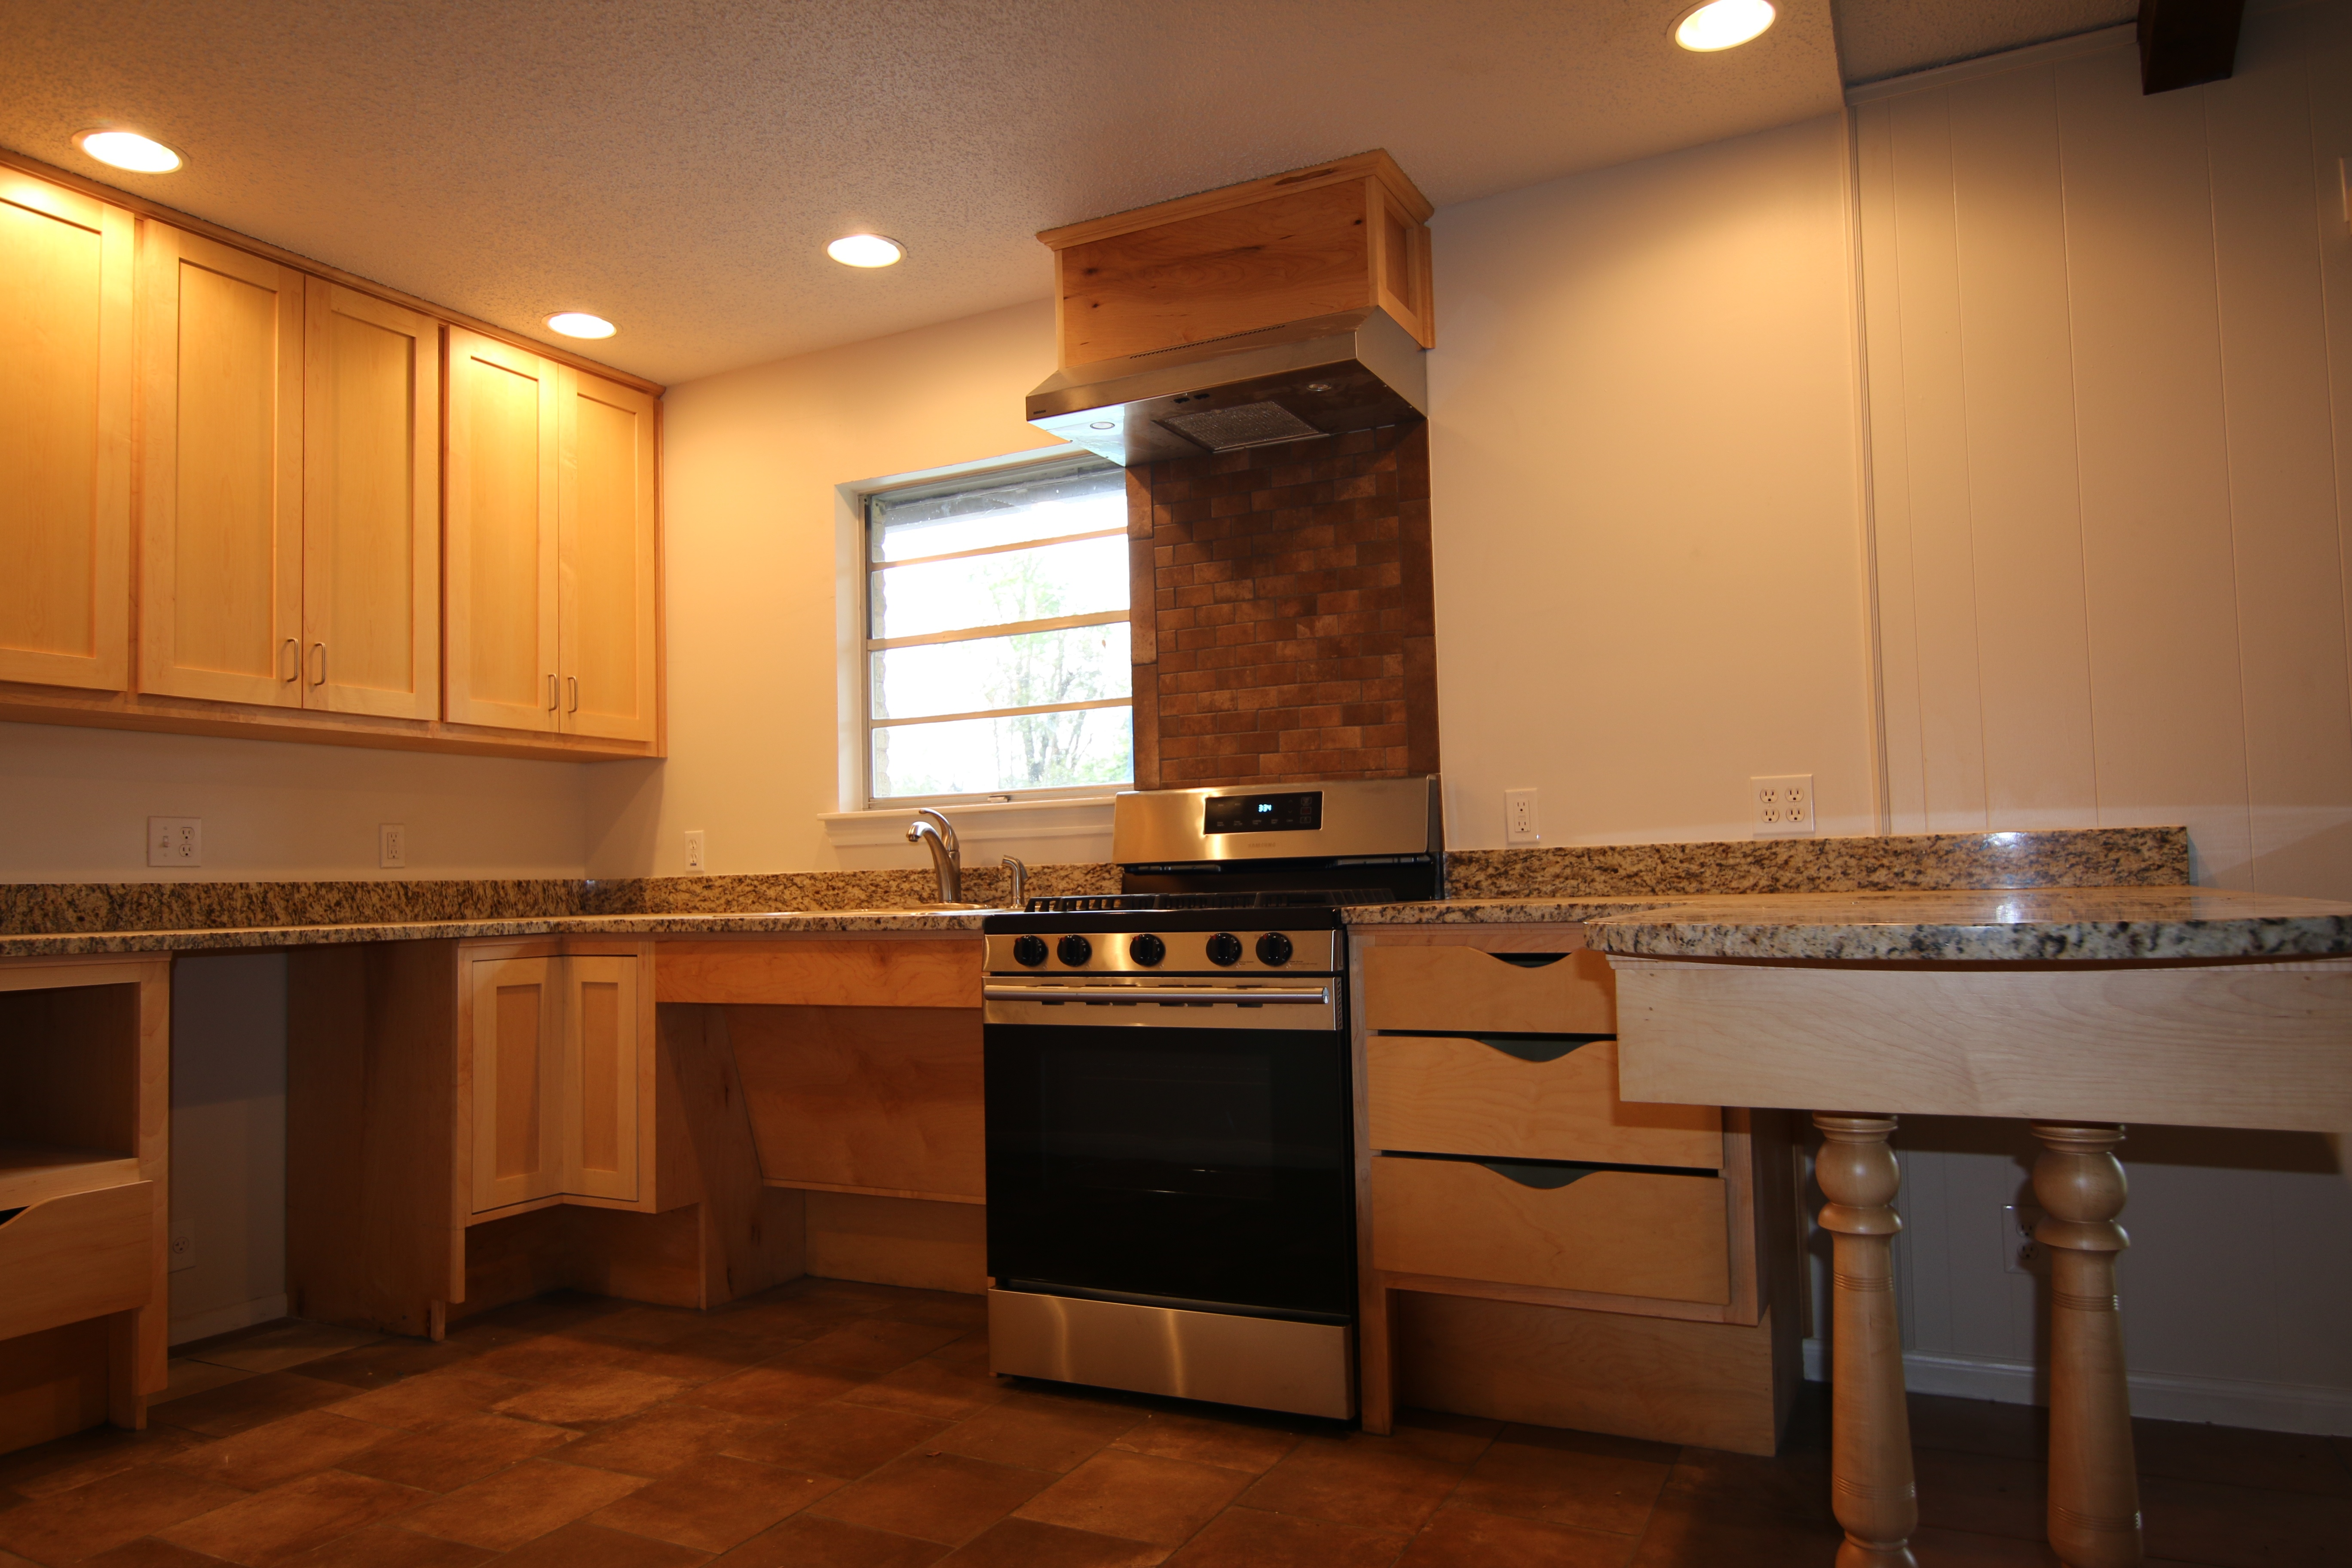 wheelchair accessible kitchens in austin ada compliant kitchen cabinets in austin texas  rh   tsquareco com